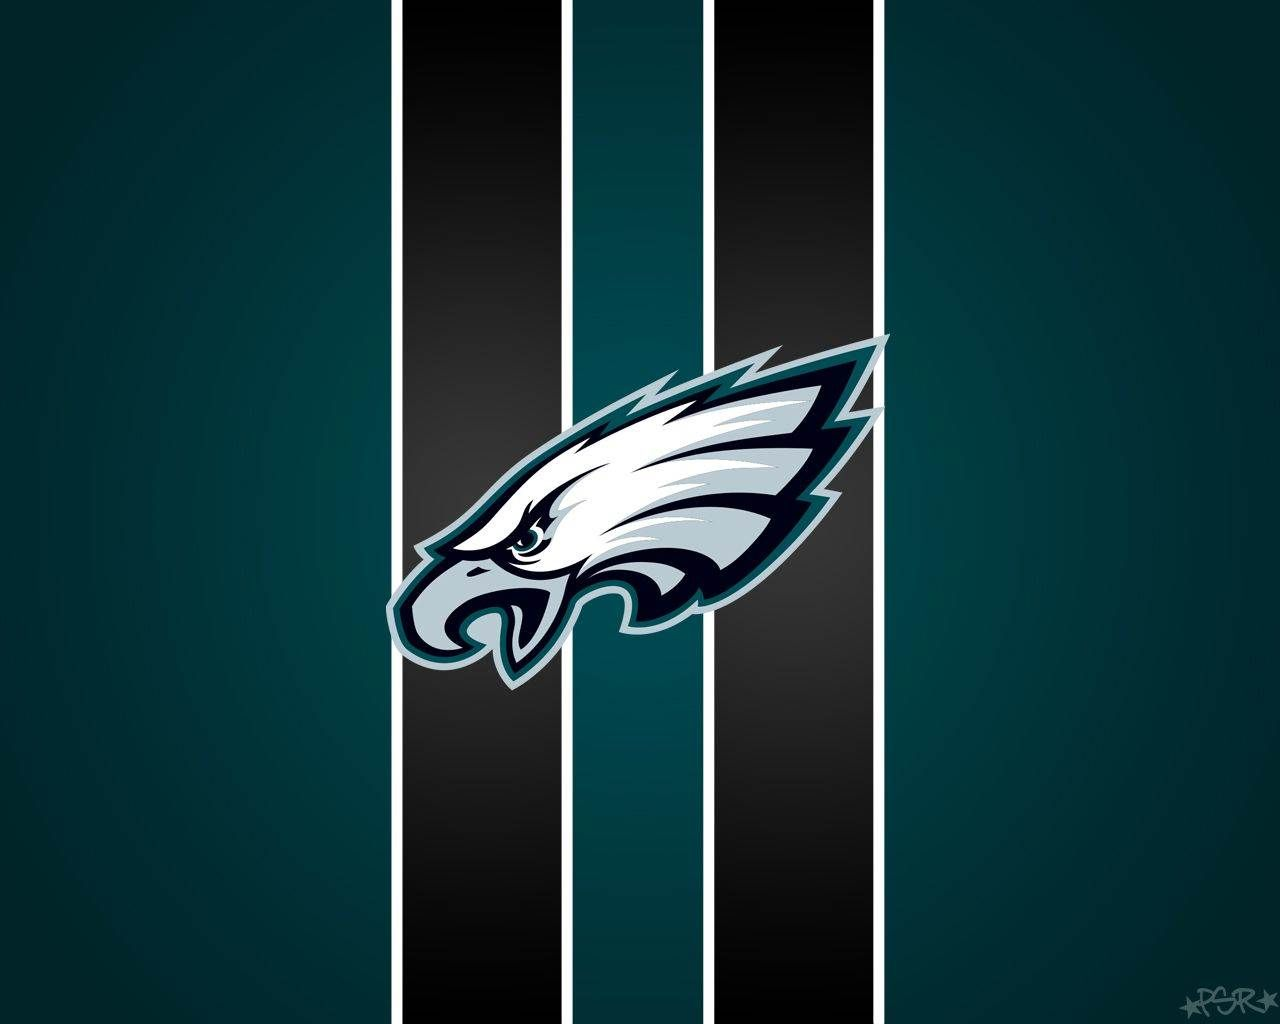 Philadelphia Eagles Wallpaper Free RAMWEB 1280x1024 Wallpapers